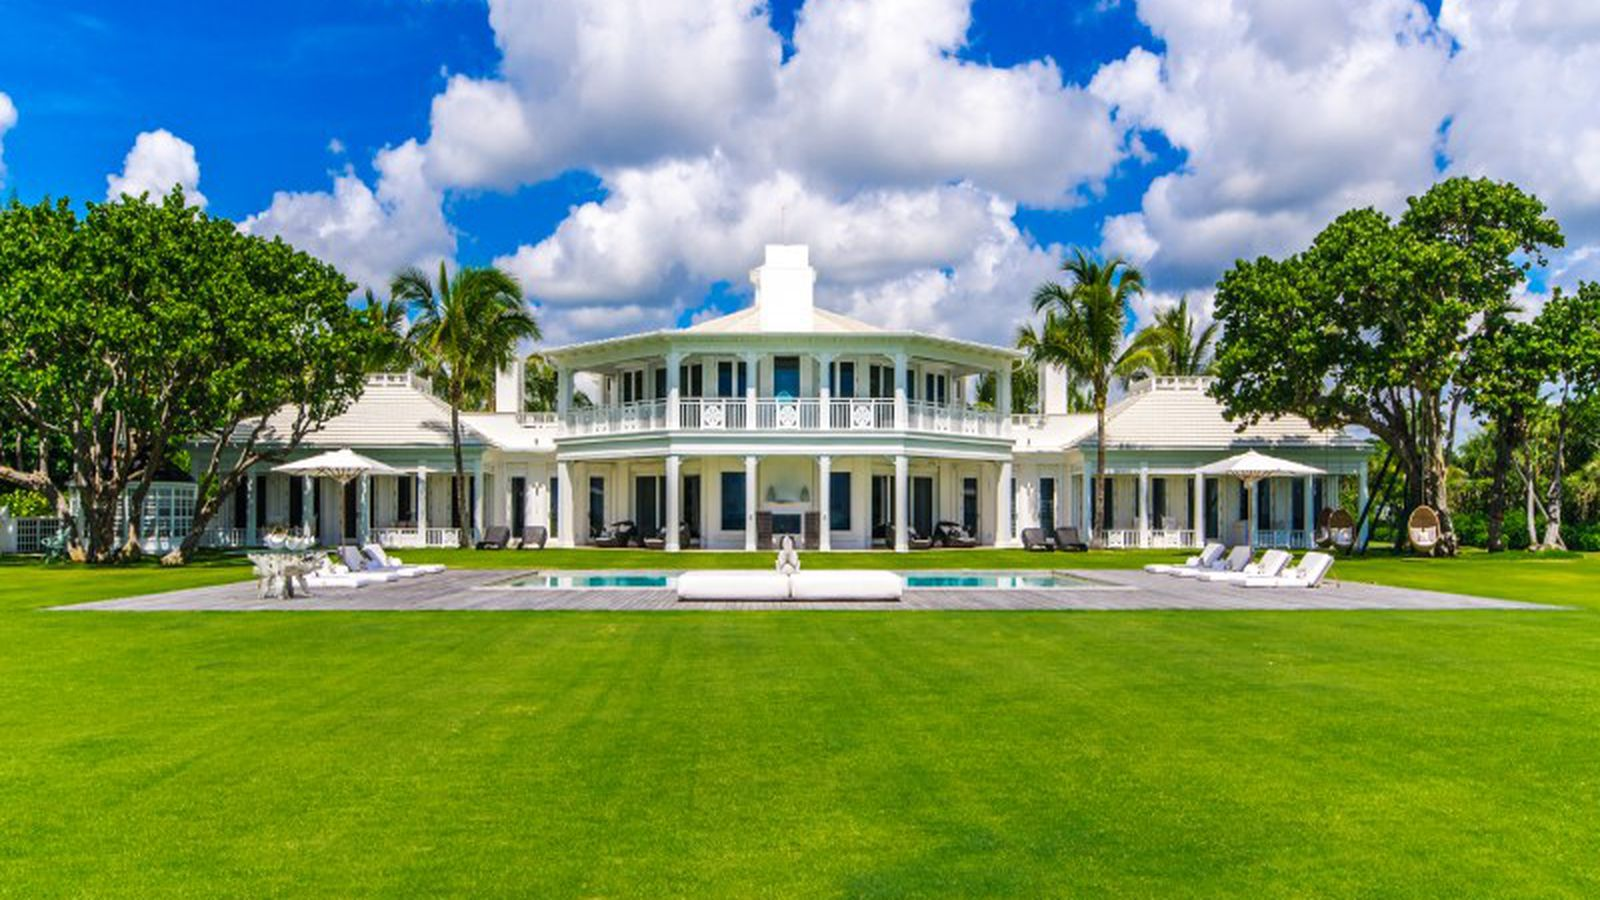 Jupiter island celebrity homes map new york